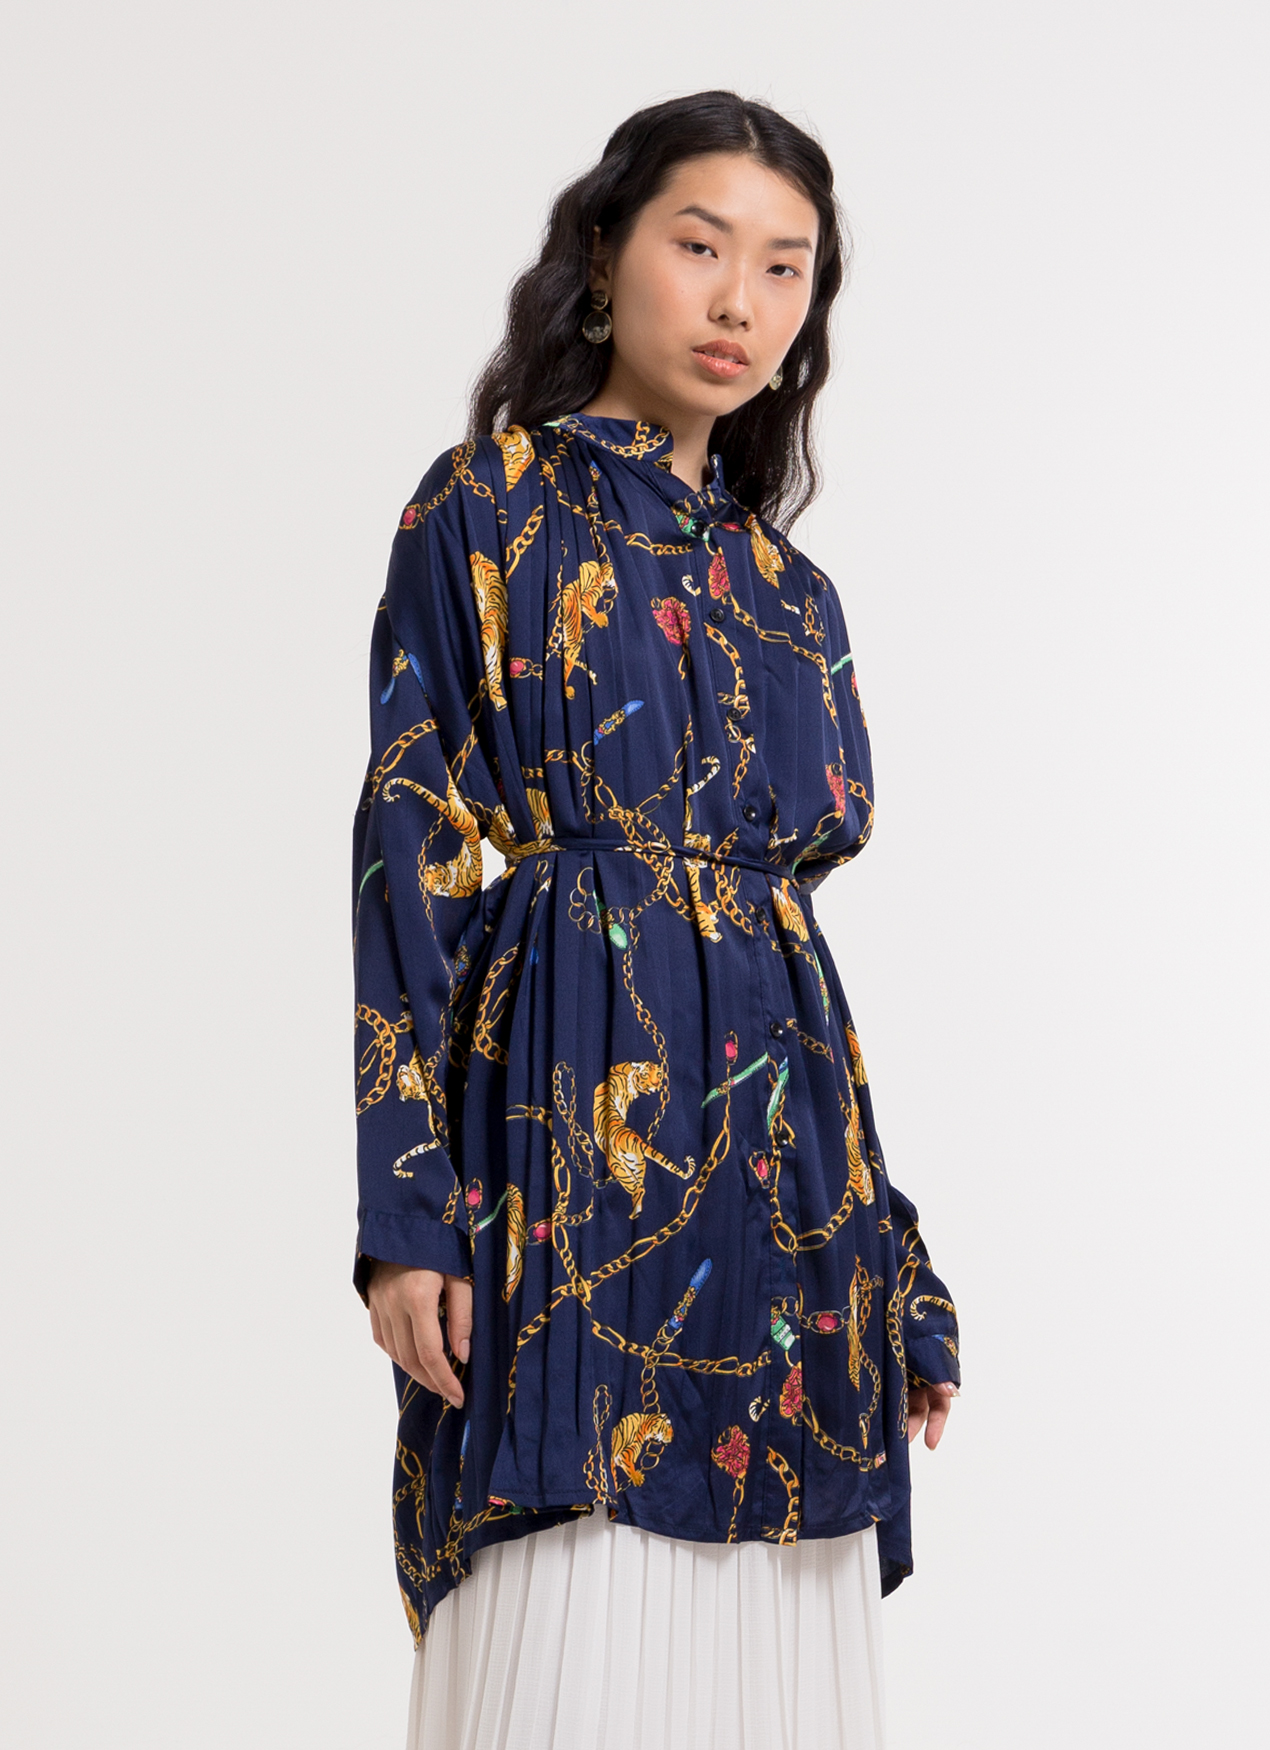 BOWN Reverie Top - Navy